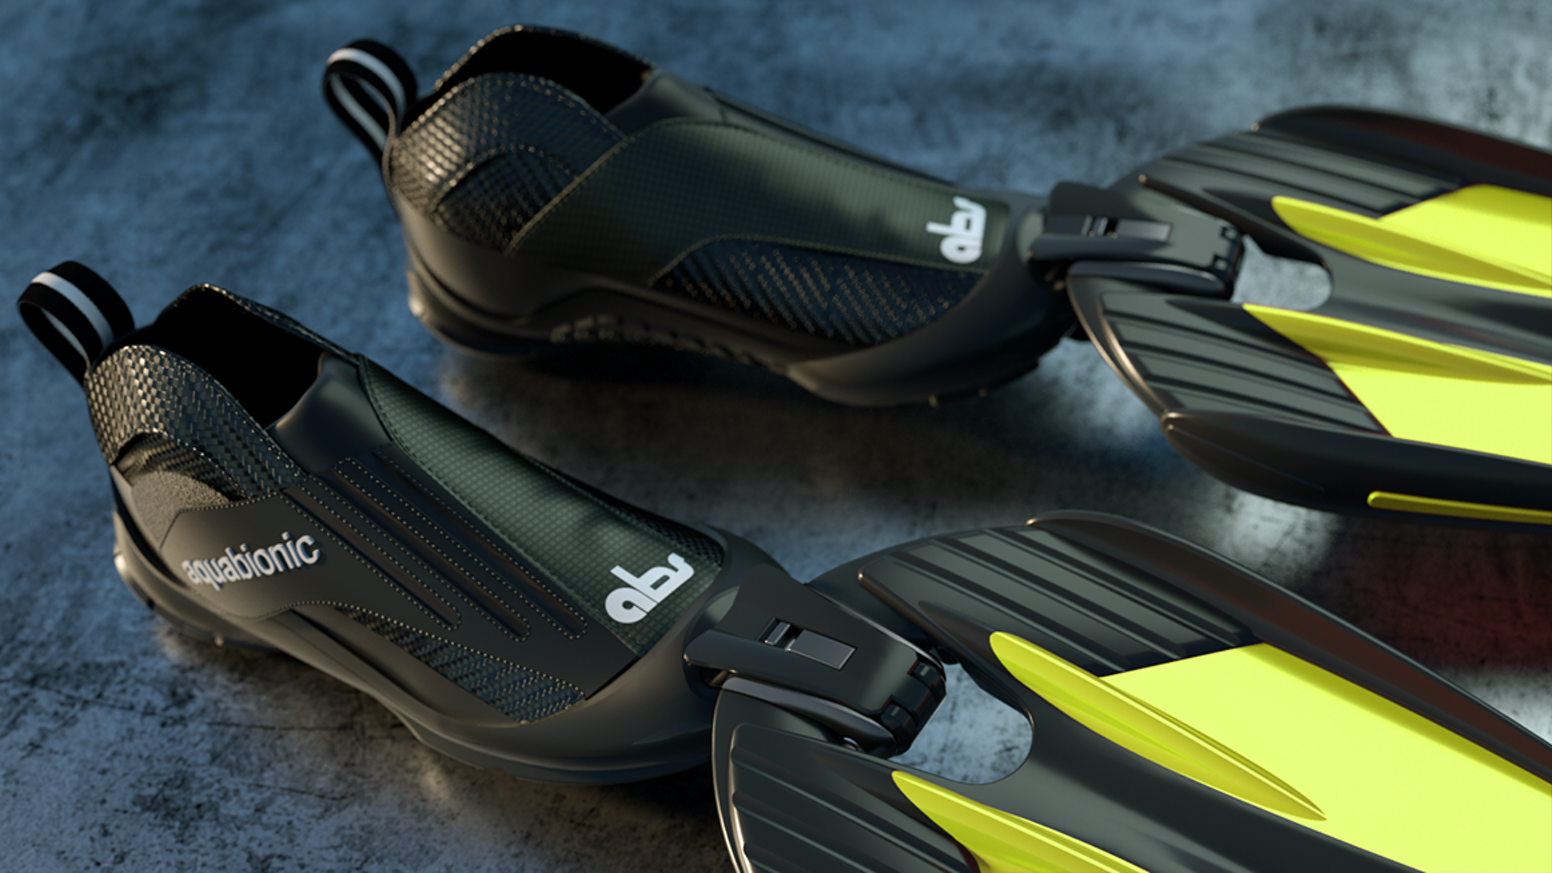 Aquatic hybrid water sports shoes|boots connect to fin-blade modules using ski-binding tech |aqua bionic|surf|snorkel|dive|swim|flipper